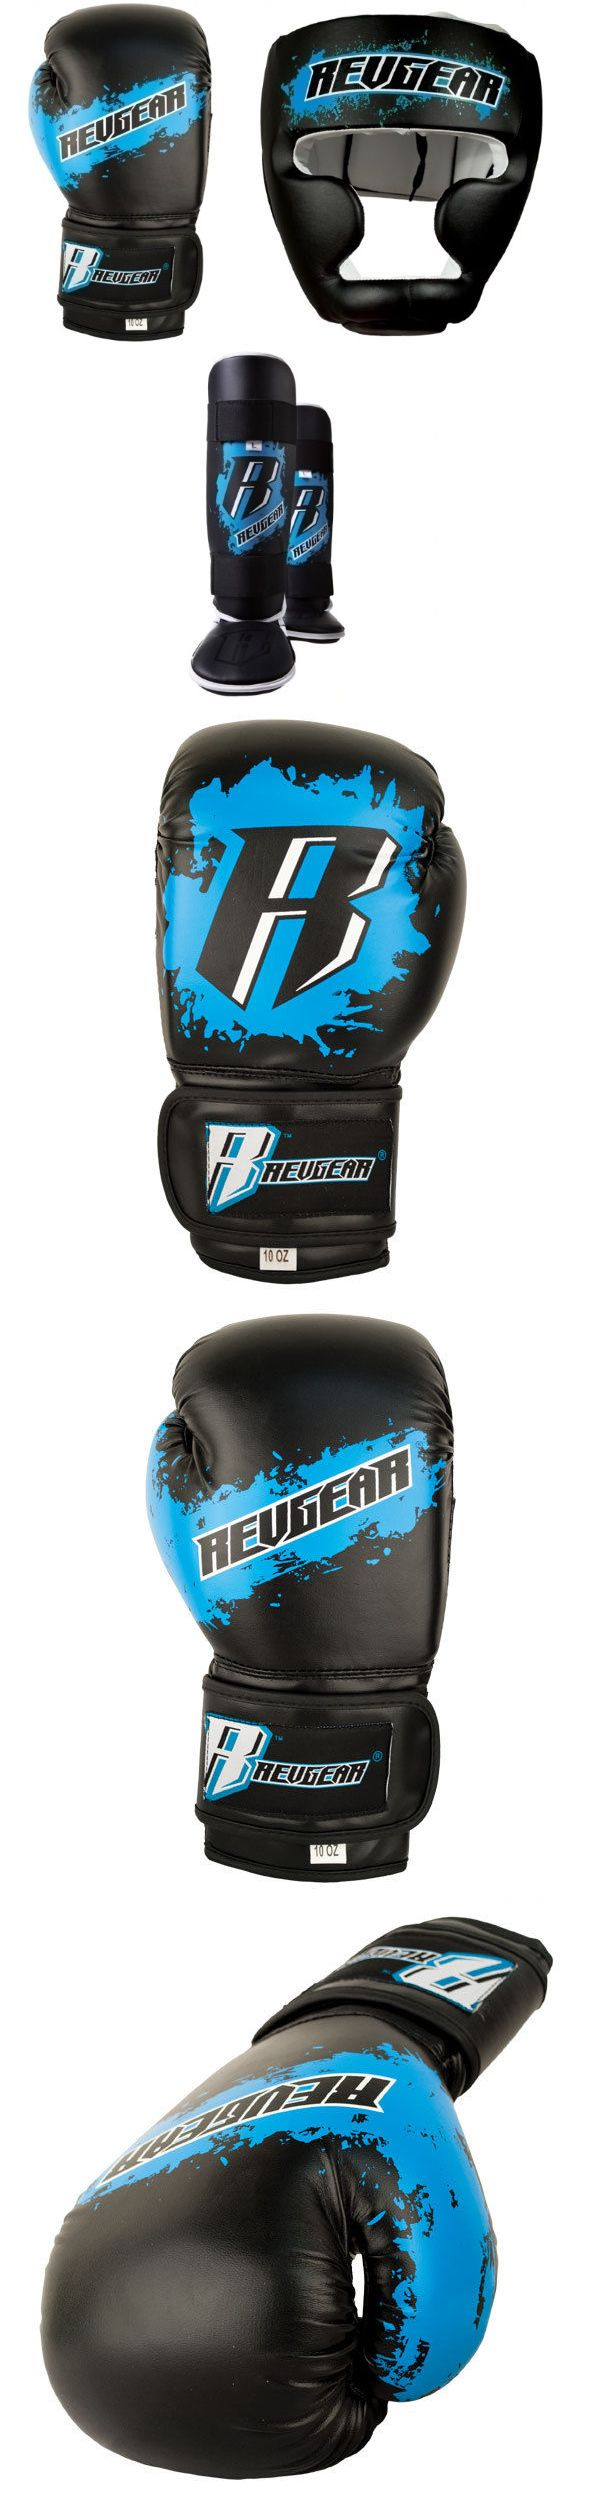 Other Combat Sport Protection 179783: Revgear Youth Boxing Mma Sparring Gear Set - Blue -> BUY IT NOW ONLY: $99.95 on eBay!